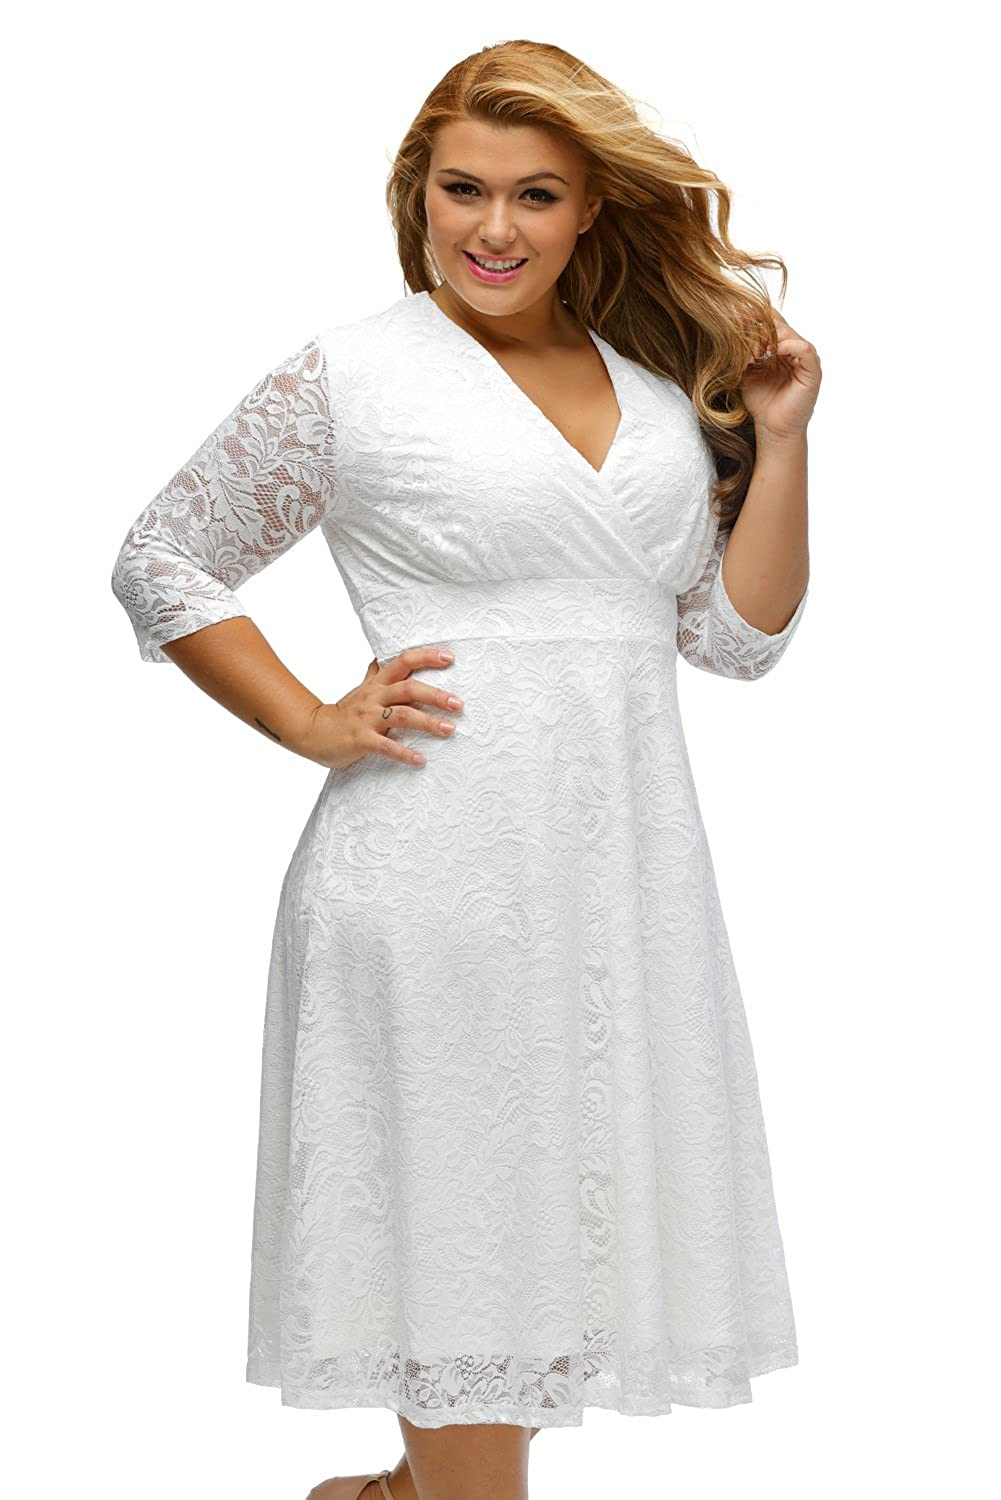 3e4aacb114 Fashion Women s Elegant Lace Plus Size Formal Bridal Wedding Party Skater  Dress at Amazon Women s Clothing store